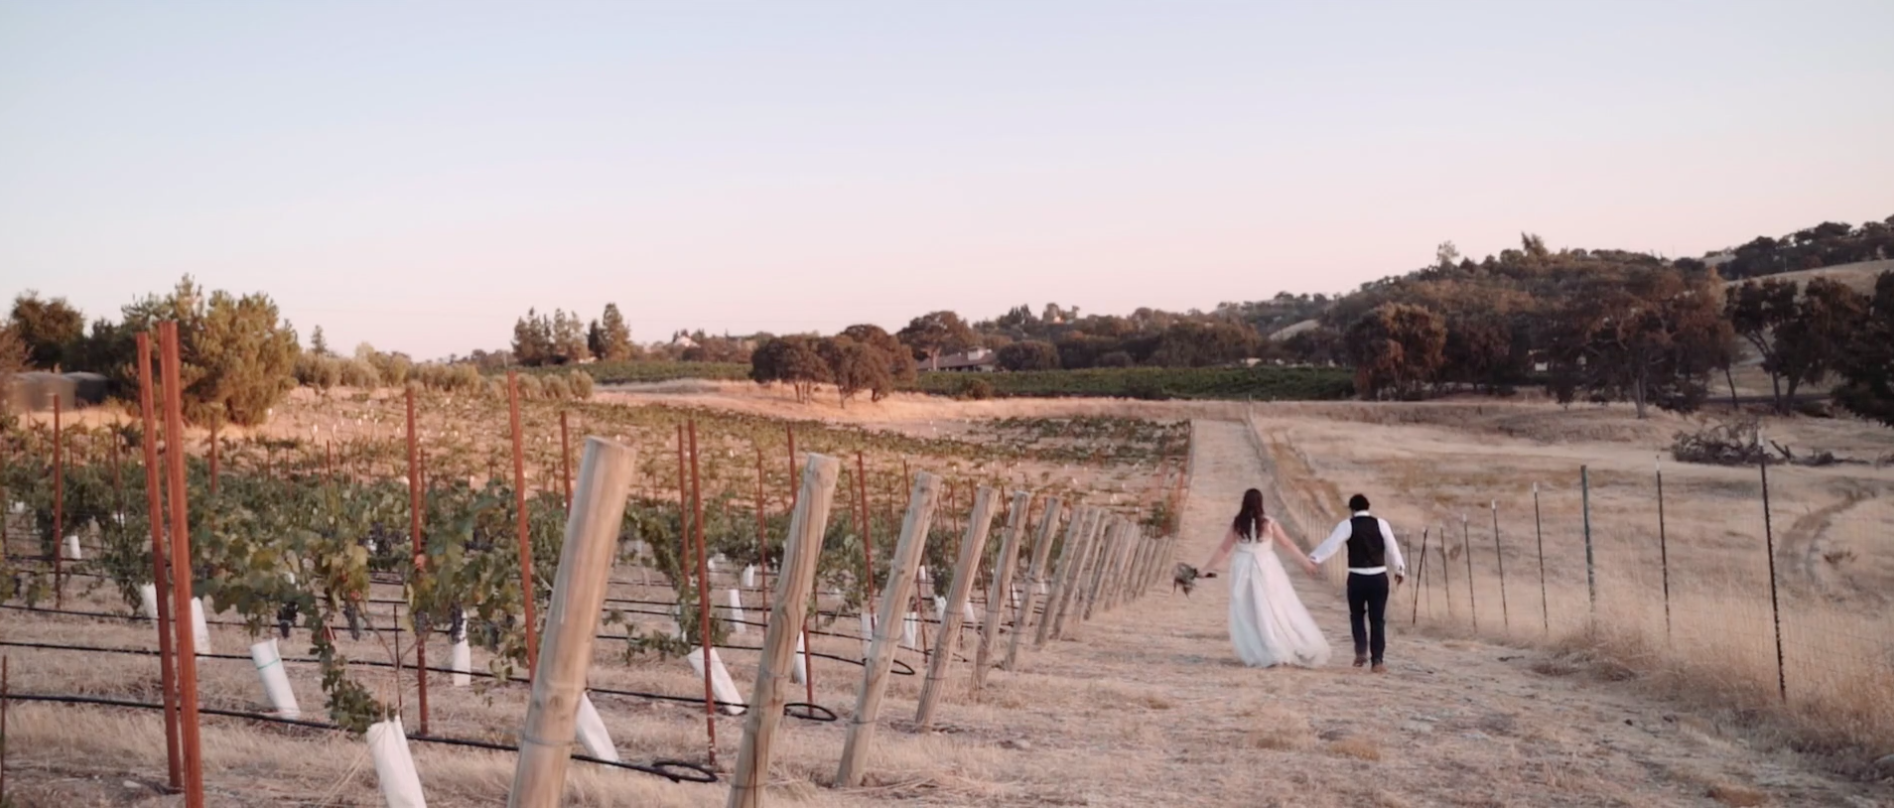 Katie + Gian | Creston, California | Ella's Vineyard